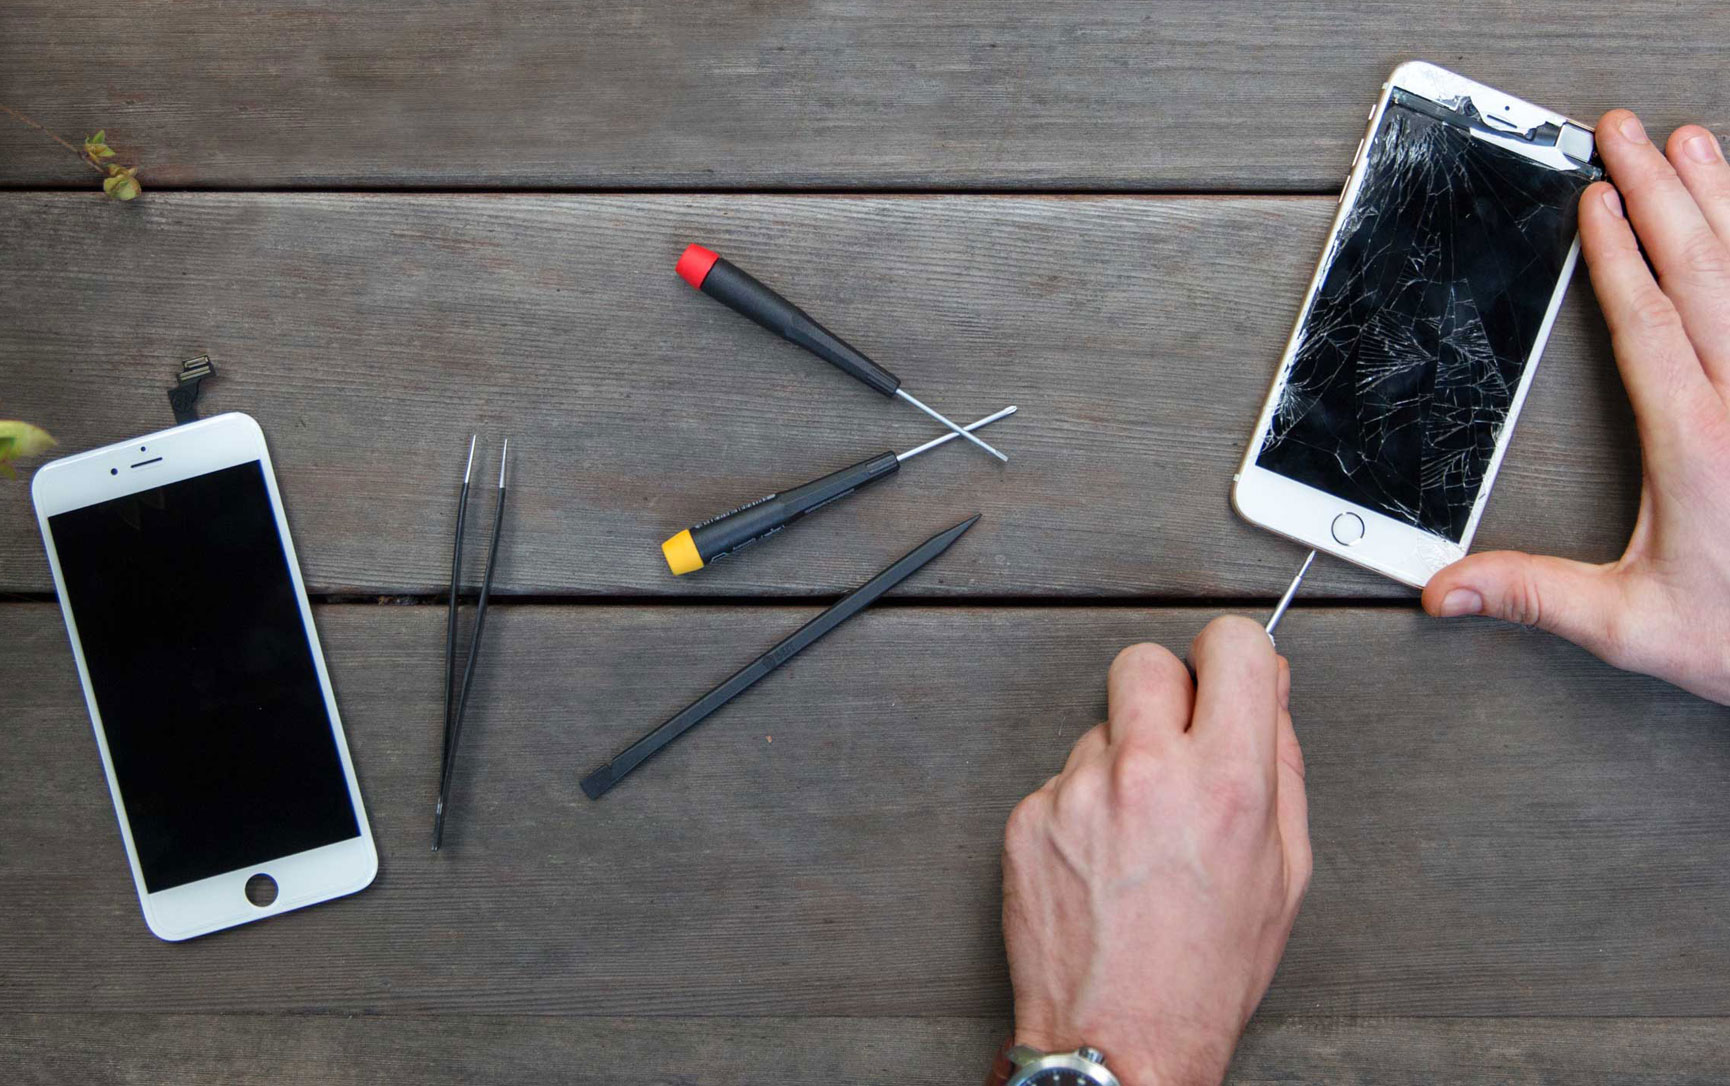 AAPL shareholder resolution calls for company to support right to repair